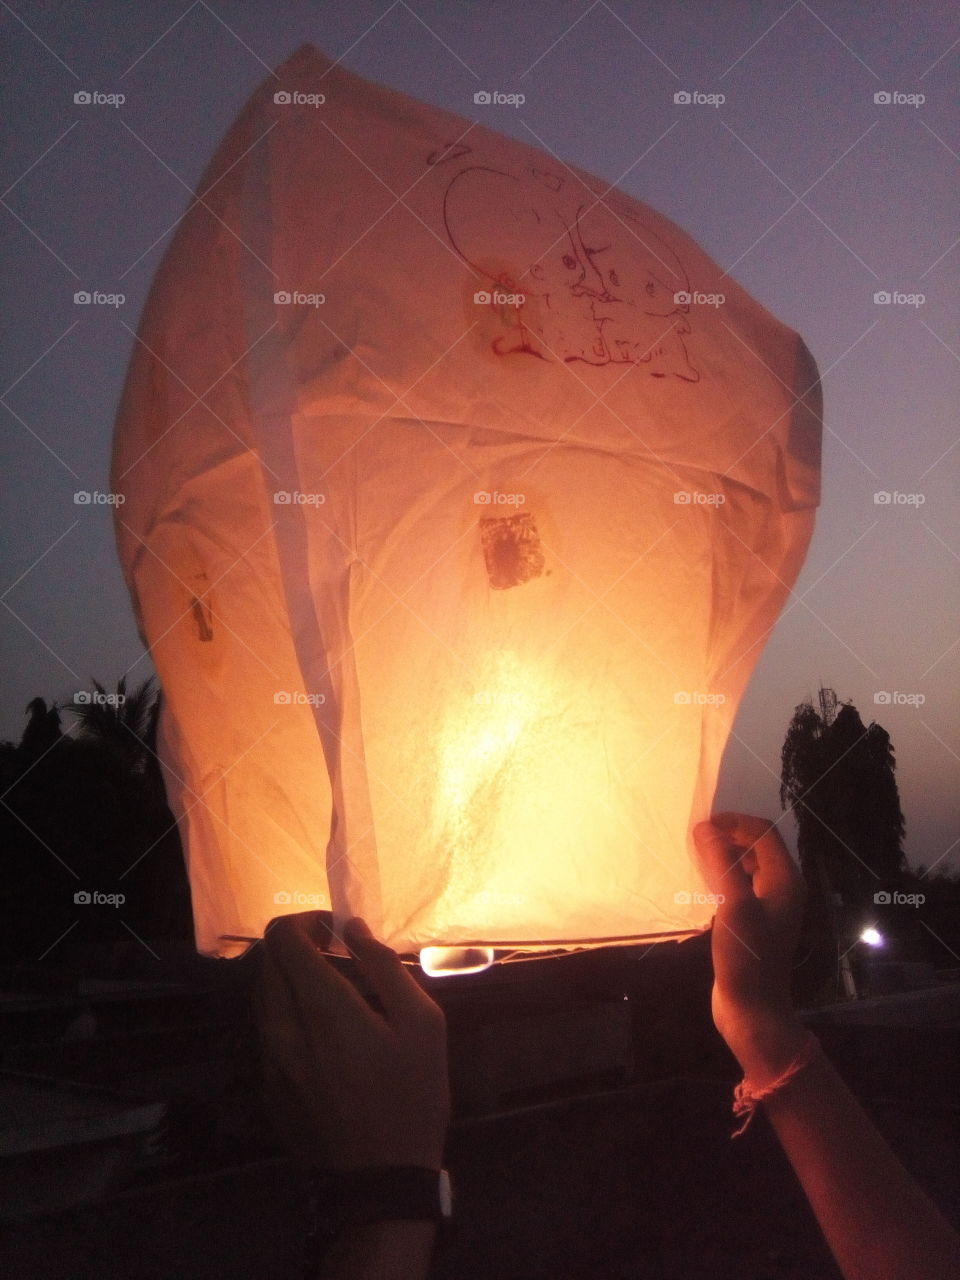 A hot air balloon is a lighter than air aircraft consisting of a bag, called an envelope, which contains heated air. Suspended beneath is a gondola or wicker basket (in some long-distance or high-altitude balloons, a capsule), which carries passengers and (usually) a source of heat, in most cases an open flame. The heated air inside the envelope makes it buoyant since it has a lower density than the colder air outside the envelope. As with all aircraft, hot air balloons cannot fly beyond the atmosphere. Unlike gas balloons, the envelope does not have to be sealed at the bottom, since the air near the bottom of the envelope is at the same pressure as the surrounding air. In modern sport balloons the envelope is generally made from nylon fabric and the inlet of the balloon (closest to the burner flame) is made from a fire resistant material such as Nomex. Modern balloons have been made in all kinds of shapes, such as rocket ships and the shapes of various commercial products, though the traditional shape is used for most non-commercial, and many commercial, applications.  The hot air balloon is the first successful human-carrying flight technology. The first untethered manned hot air balloon flight was performed by Jean-François Pilâtre de Rozierand François Laurent d'Arlandes on November 21, 1783, in Paris, France,[1] in a balloon created by the Montgolfier brothers.[2] The first hot-air balloon flown in the Americas was launched from the Walnut Street Jail in Philadelphia on January 9, 1793 by the French aeronaut Jean Pierre Blanchard.[3] Hot air balloons that can be propelled through the air rather than simply drifting with the wind are known as thermal airships. A hot air balloon is a lighter than air aircraft consisting of a bag, called an envelope, which contains heated air. Suspended beneath is a gondola or wicker basket (in some long-distance or high-altitude balloons, a capsule), which carries passengers and (usually) a source of heat, in most cases an open